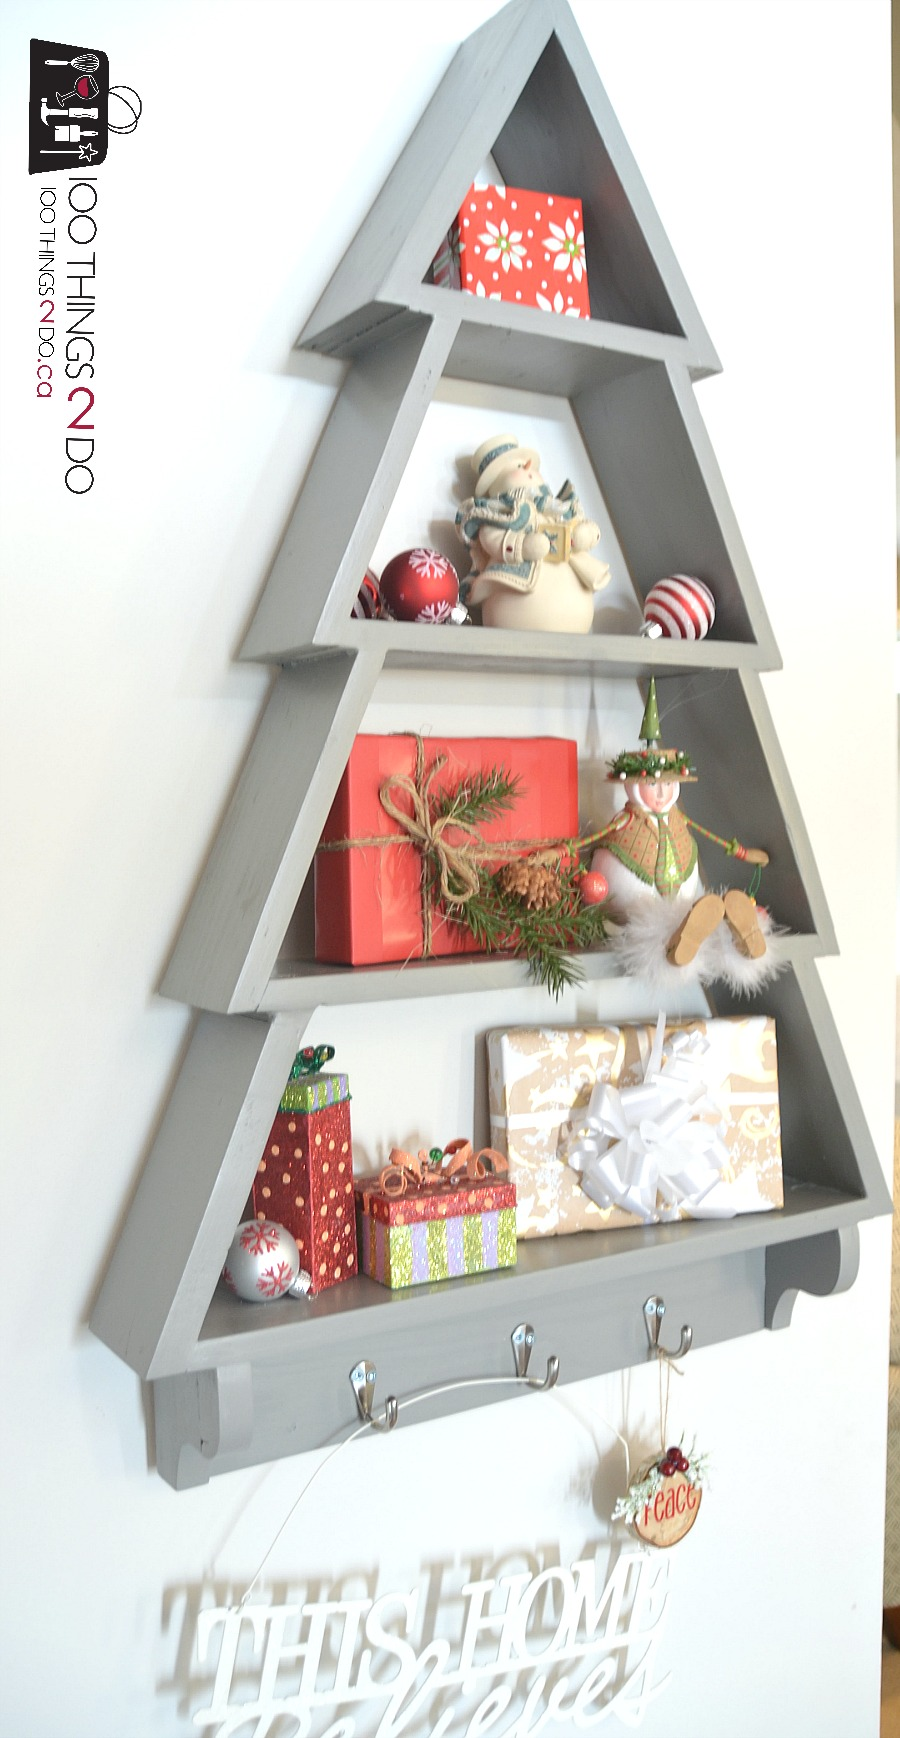 now click over and make your own diy christmas tree shelf